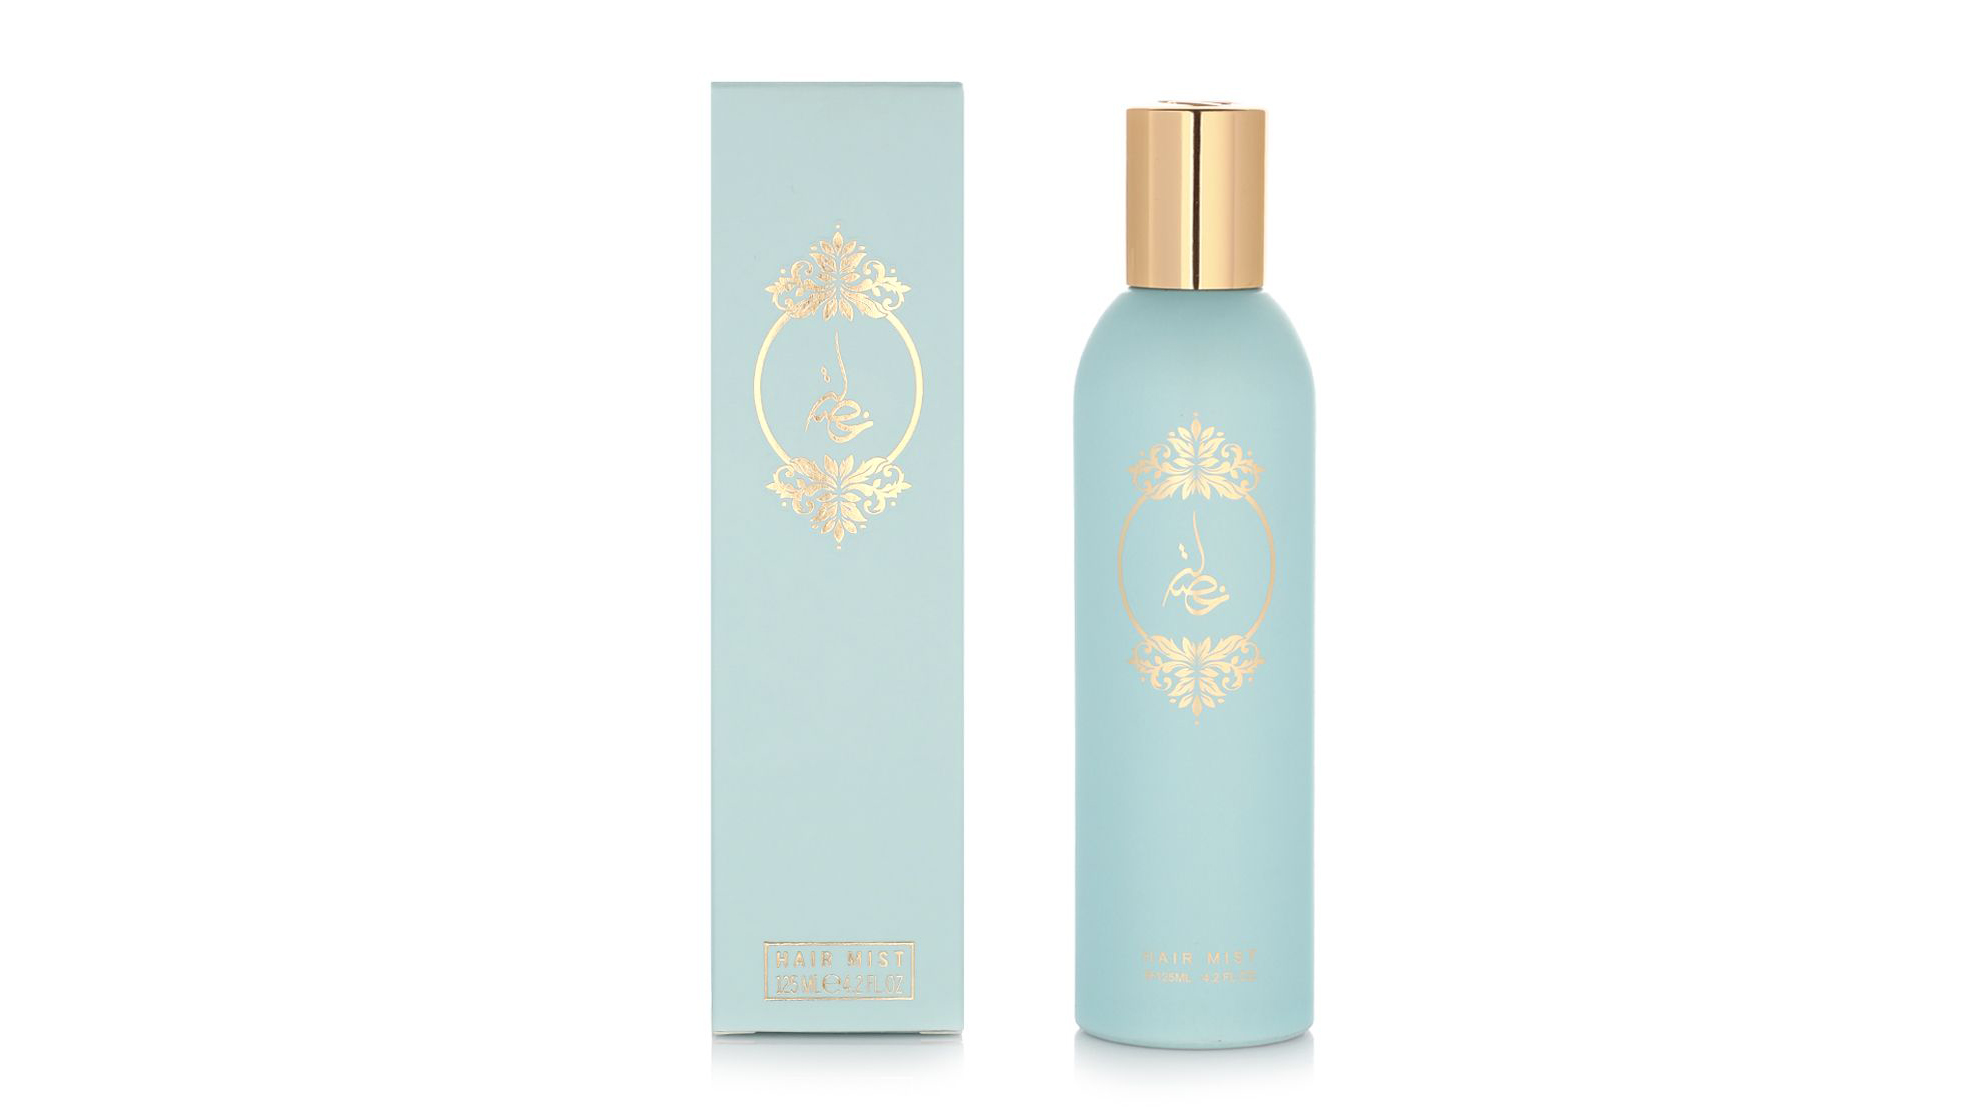 Kislah Tiffany Hair Mist by Atyab Al Marshoud